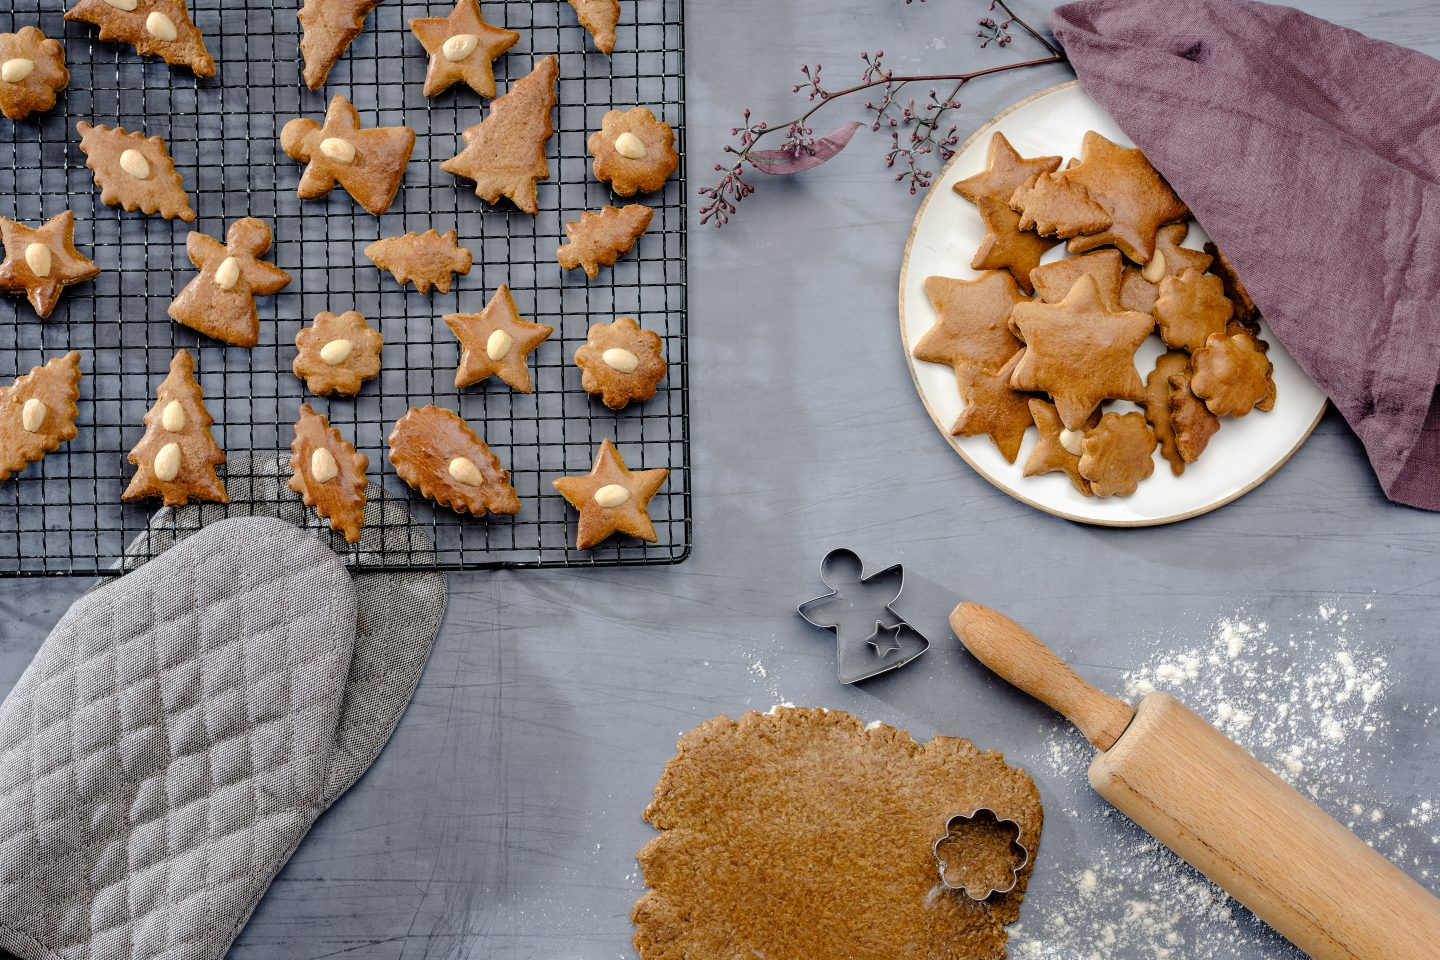 Honey gingerbreads are being cut out of dough and lie on a black wire rack to cool down